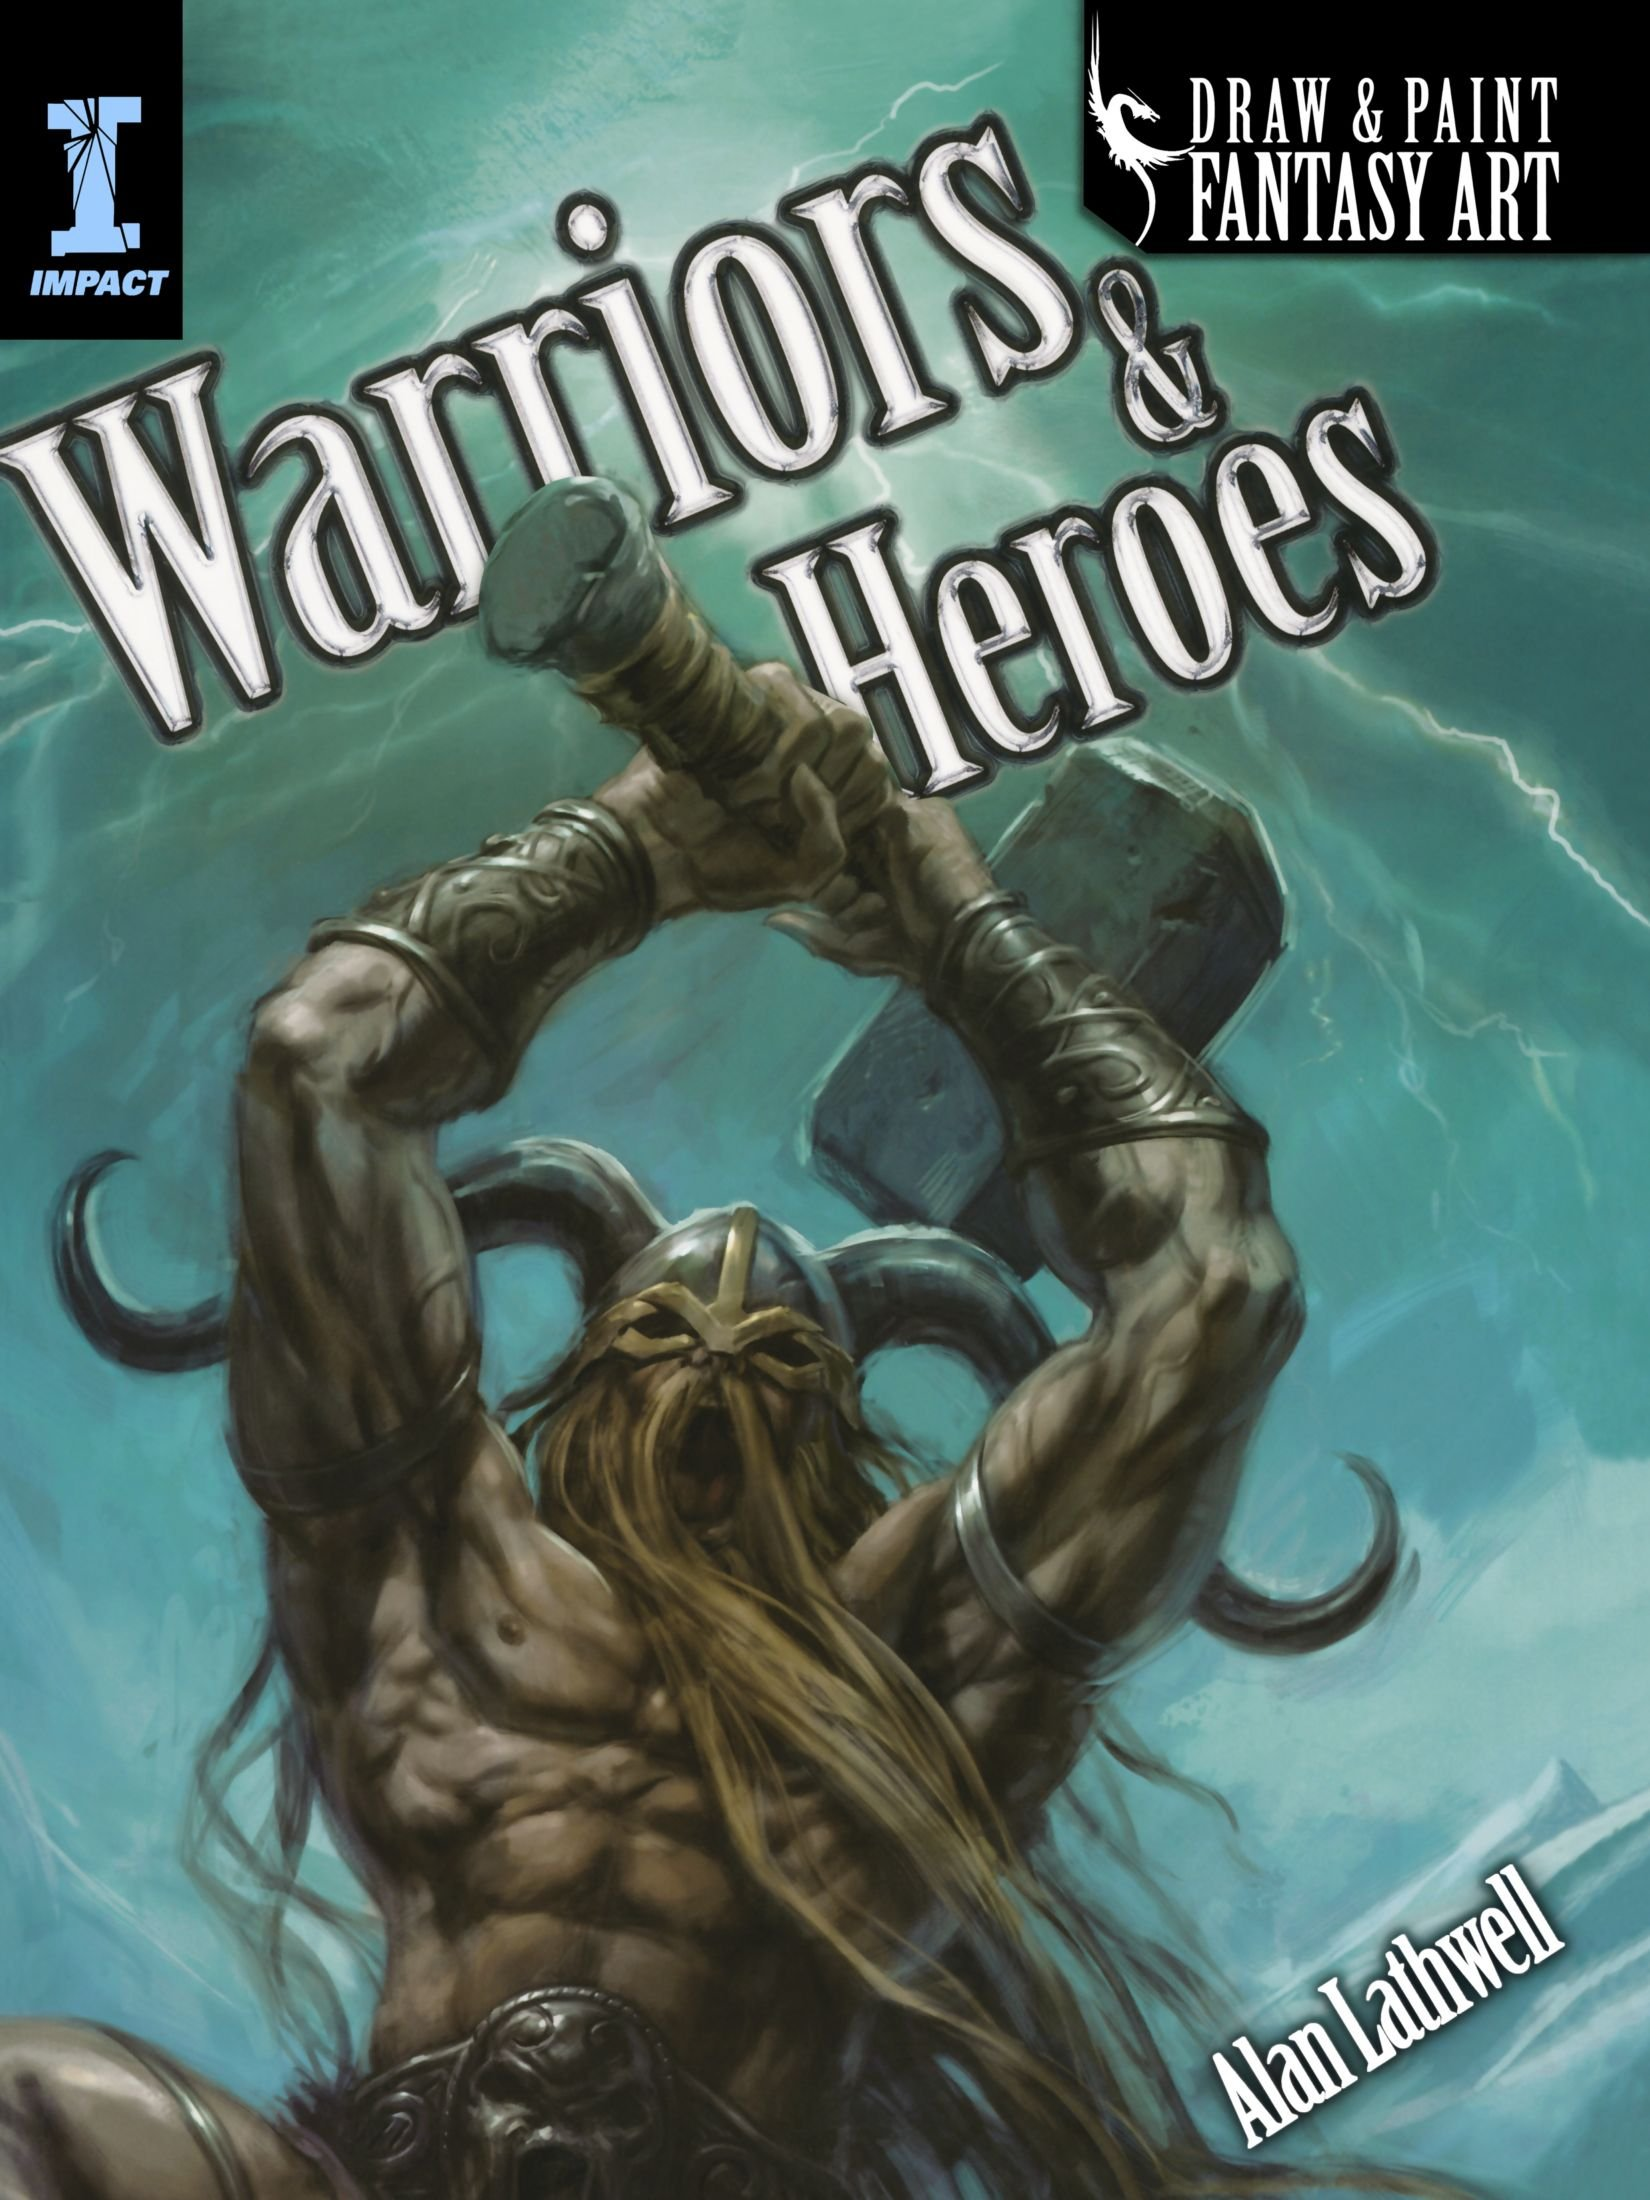 Draw & Paint Fantasy Art Warriors & Heroes pdf